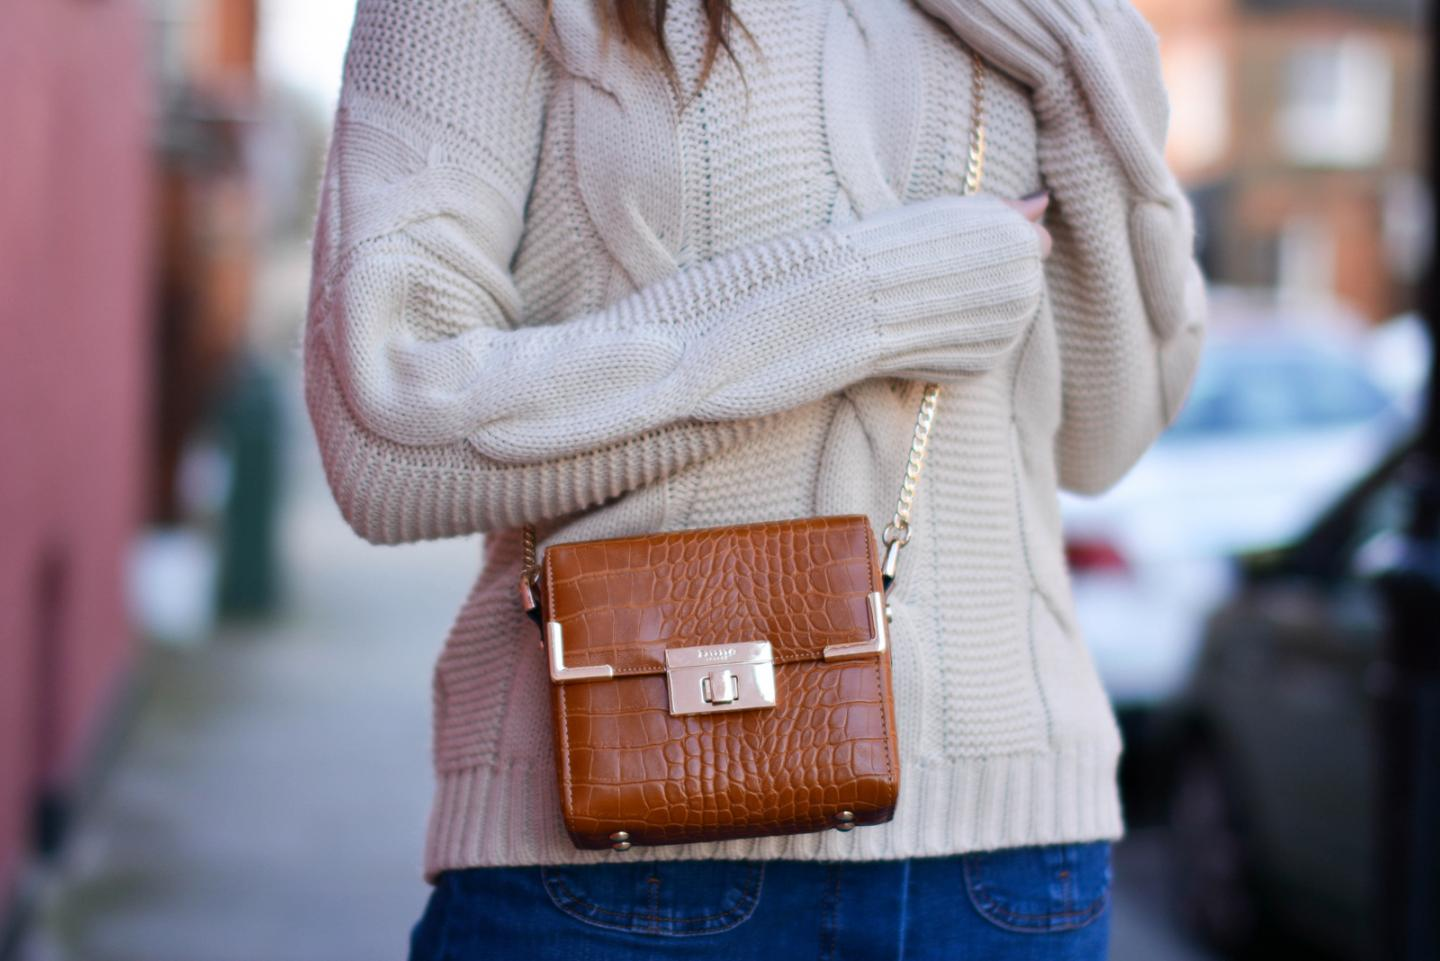 EJSTYLE - Emma Hill, 70's style, london street style, LFW AW15, off shoulder cable knit jumper, Dune box bag